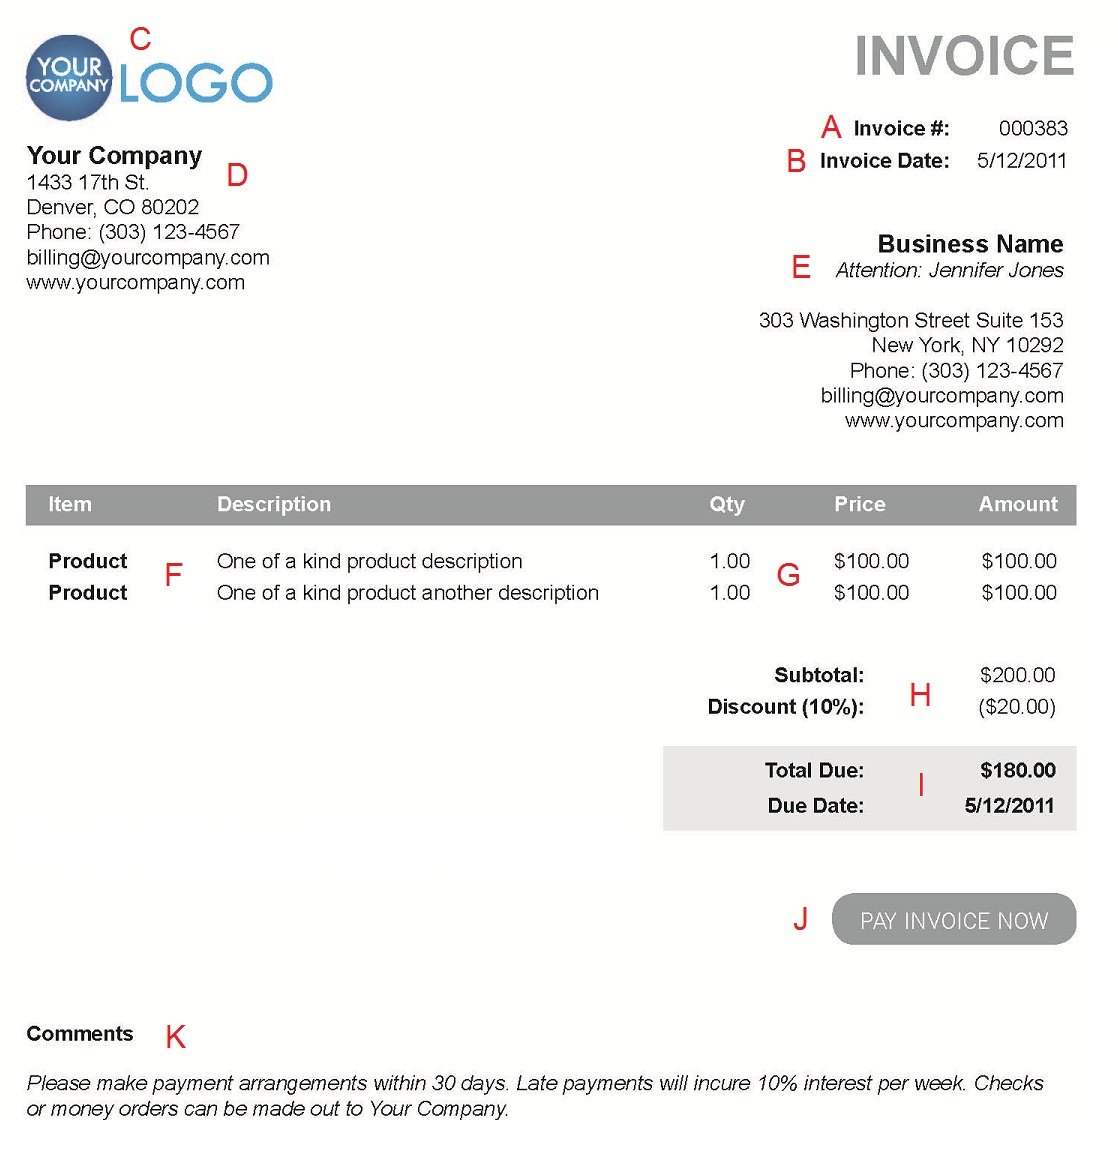 Usdgus  Seductive The  Different Sections Of An Electronic Payment Invoice With Great A  With Alluring Sample Invoice Freelance Also Normal Invoice Format In Addition Customs Invoice Template And Requesting Payment For Overdue Invoice As Well As Best Program To Make Invoices Additionally Small Business Factoring Invoice From Paysimplecom With Usdgus  Great The  Different Sections Of An Electronic Payment Invoice With Alluring A  And Seductive Sample Invoice Freelance Also Normal Invoice Format In Addition Customs Invoice Template From Paysimplecom